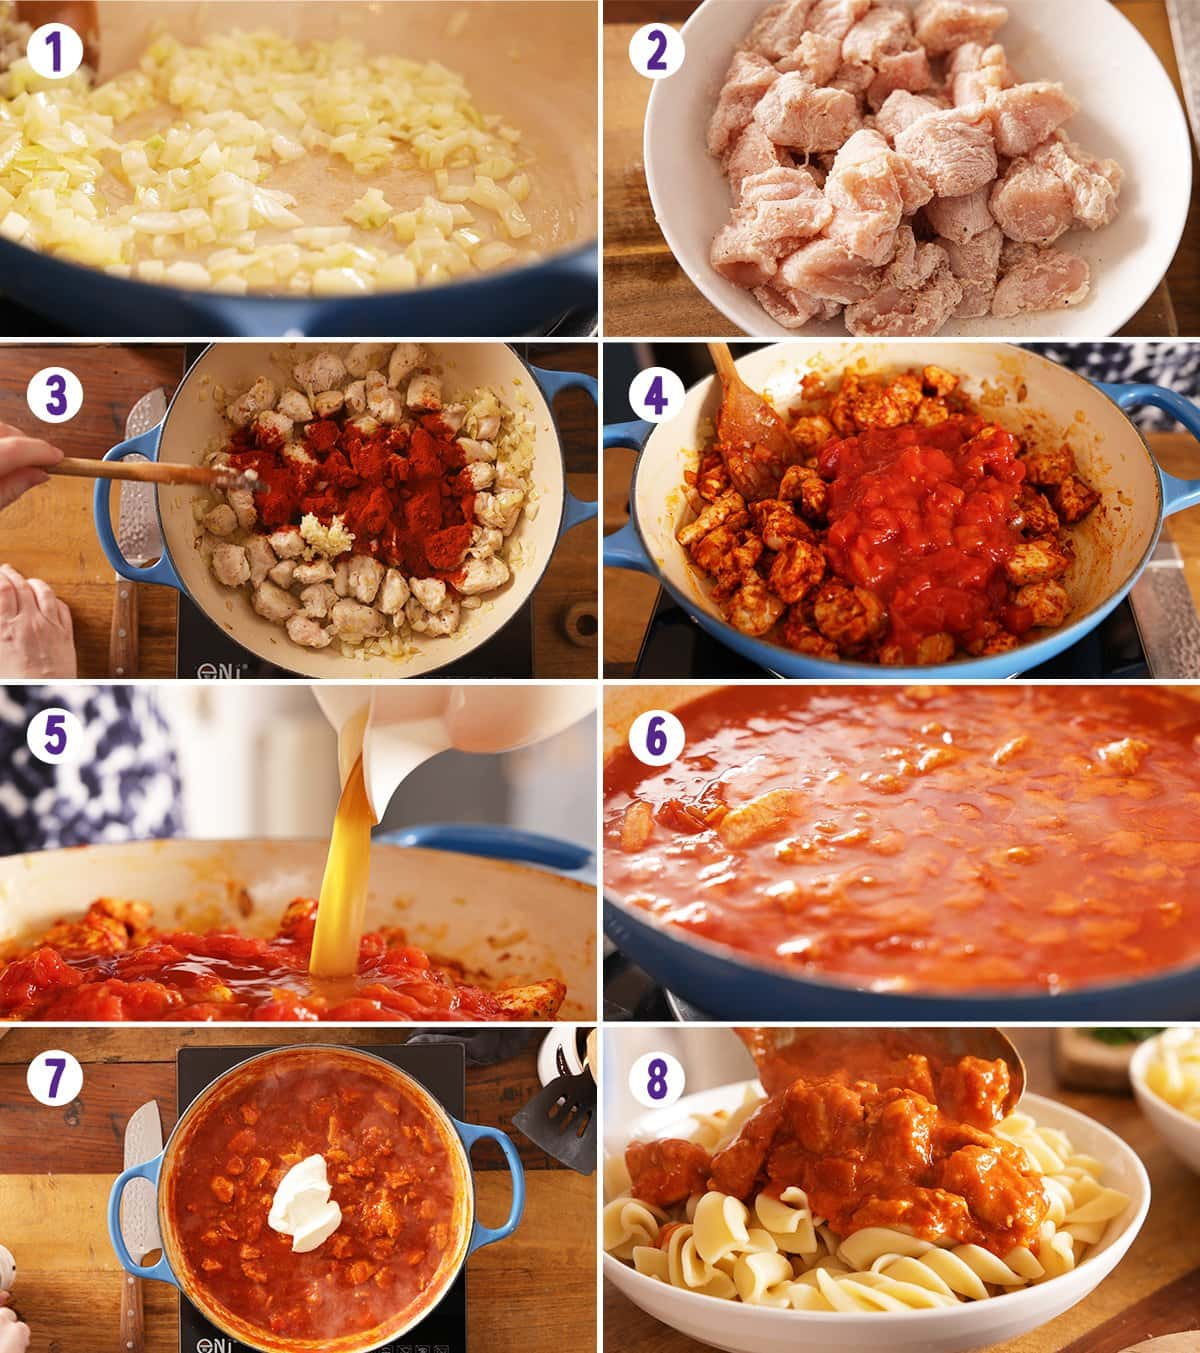 8 image collage showing how to make chicken paprikash